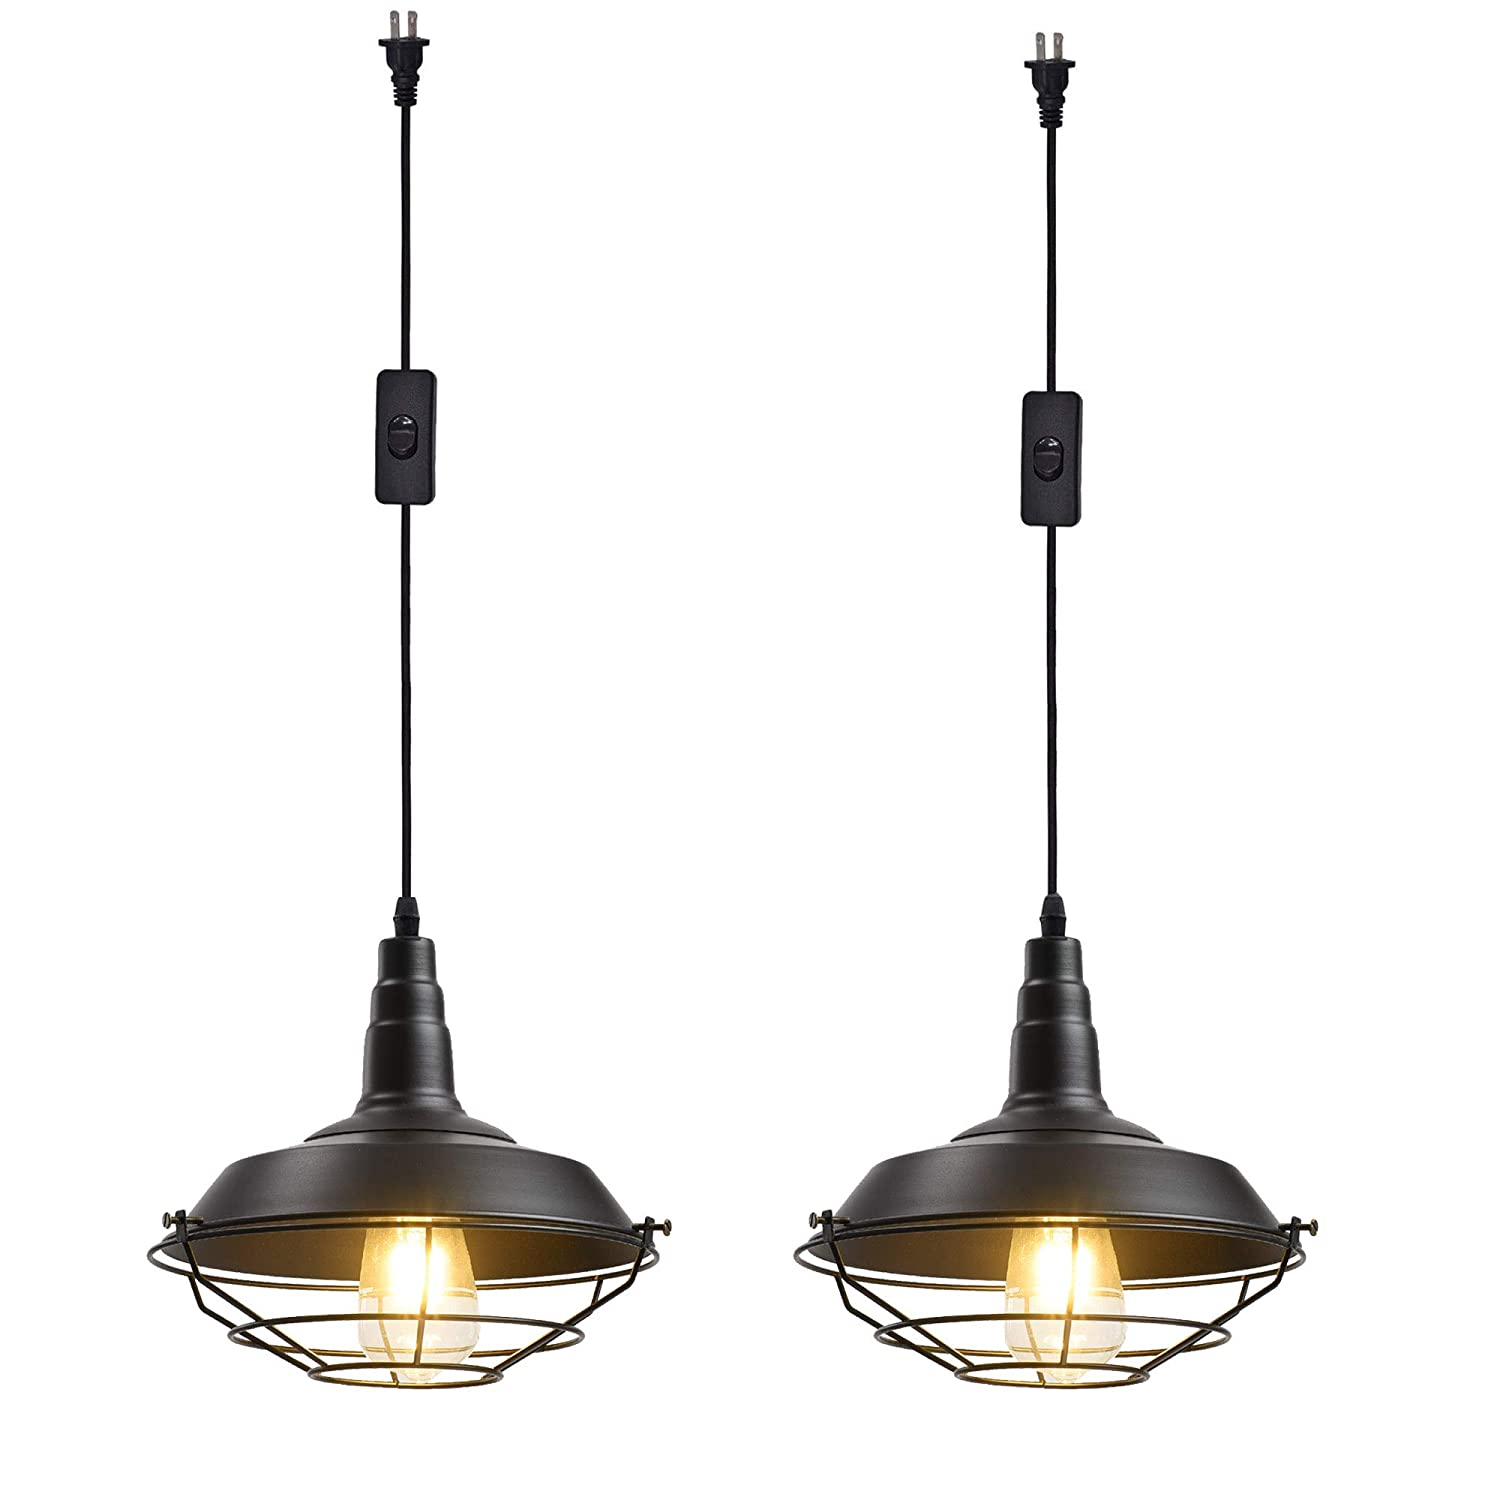 Ivalue industrial hanging pendant light with plug in cord pack of 2 black cage barn pendant lamps for kitchen dining roomdc black plug in 2